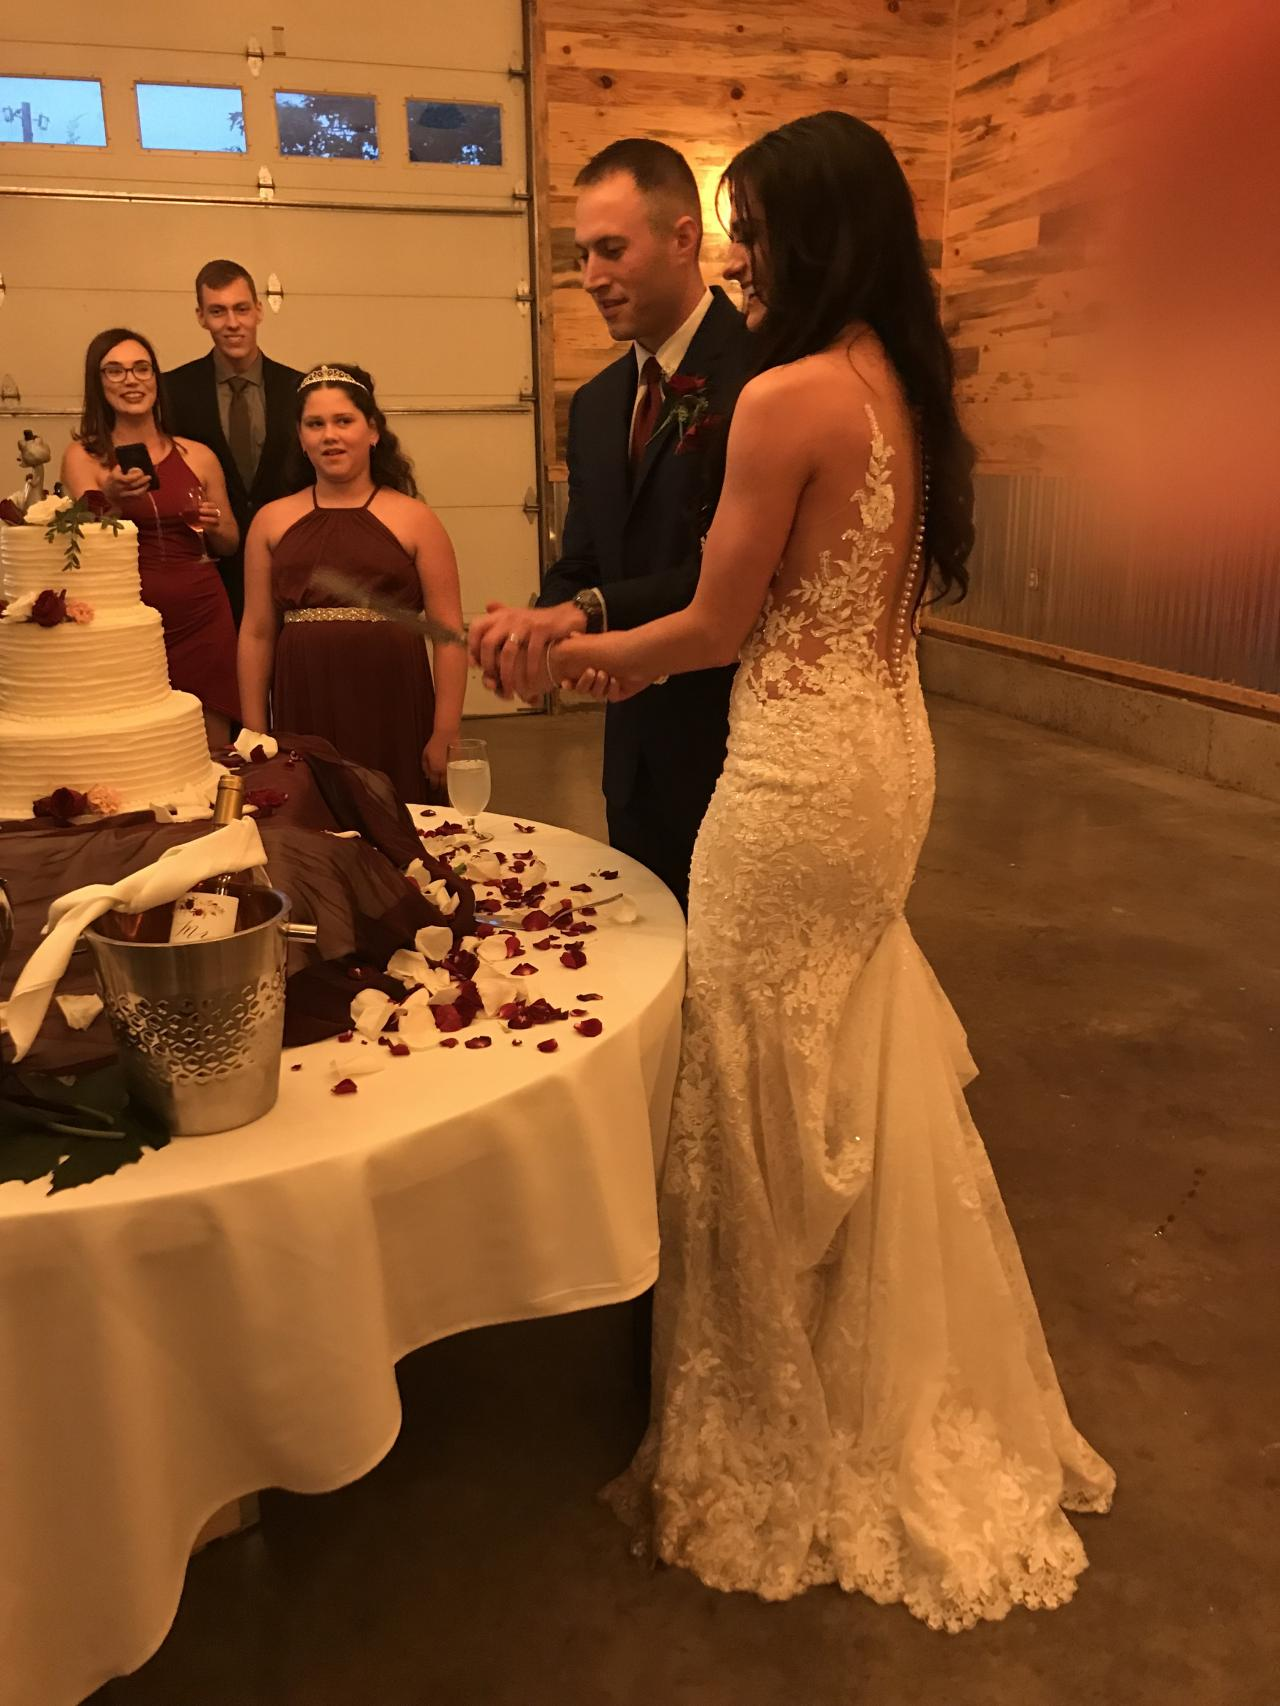 Christina and Jeremy Ettedgui cutting the wedding cake.